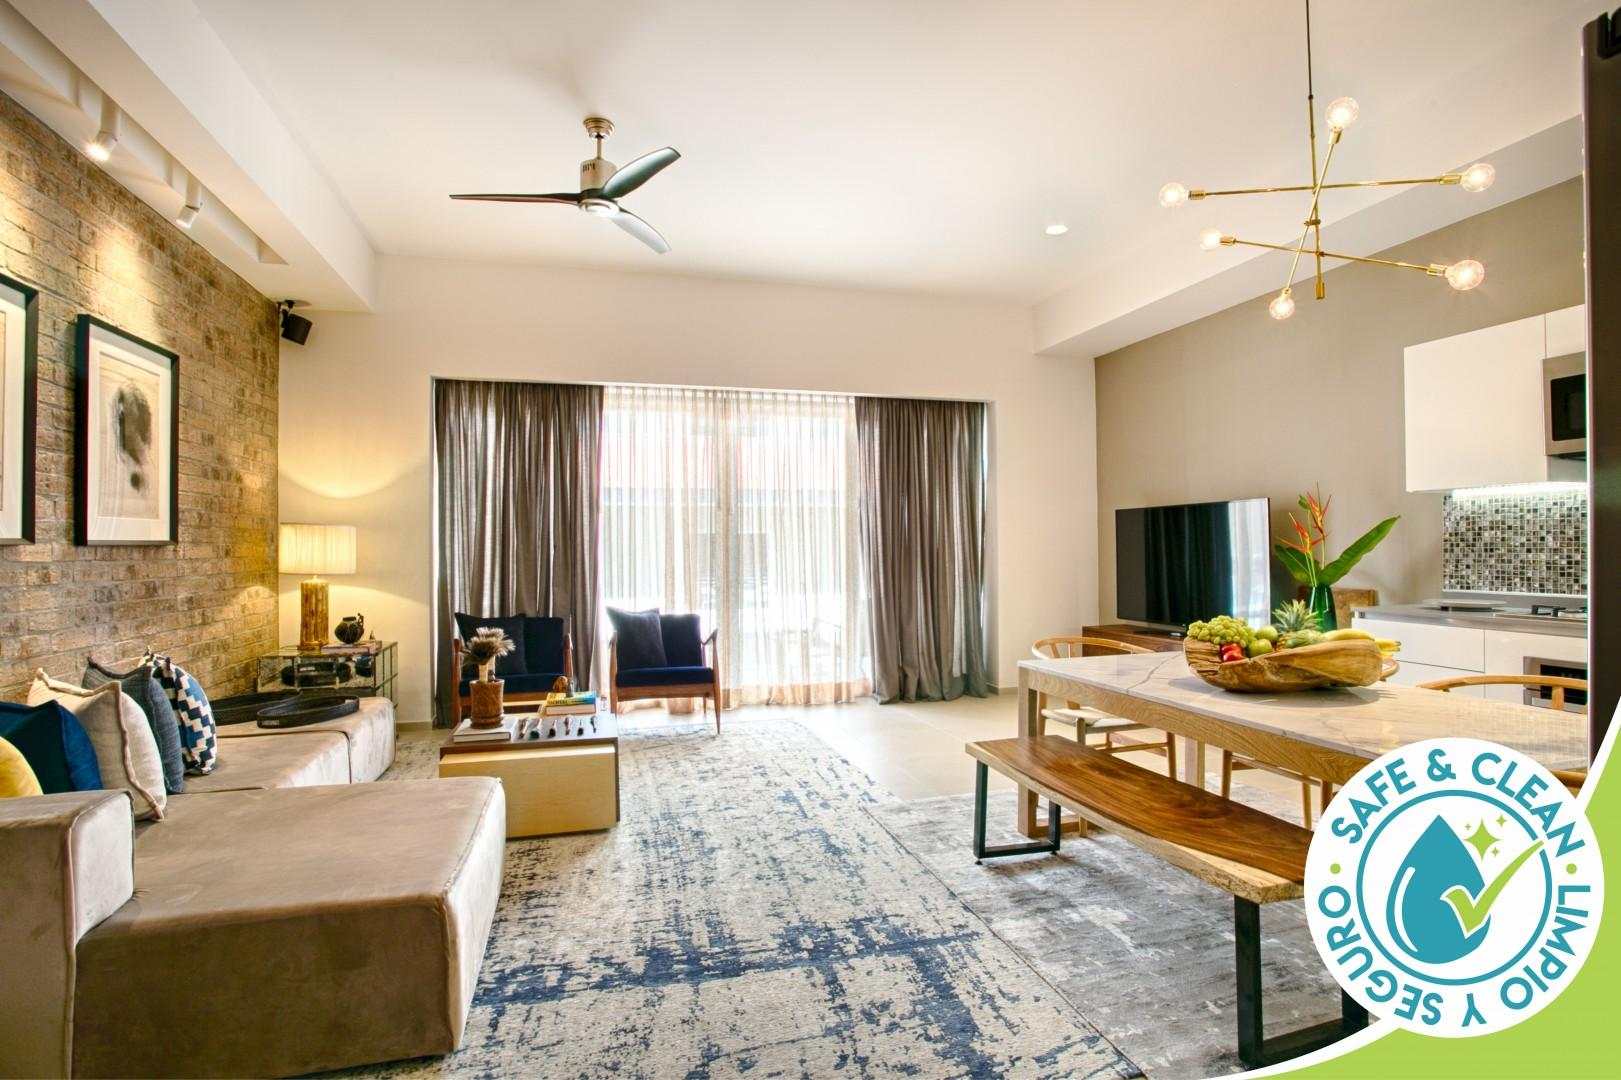 Relax at the Loft Lounge | NEW 2bdrm Condo | Rooftop Pool, Gym